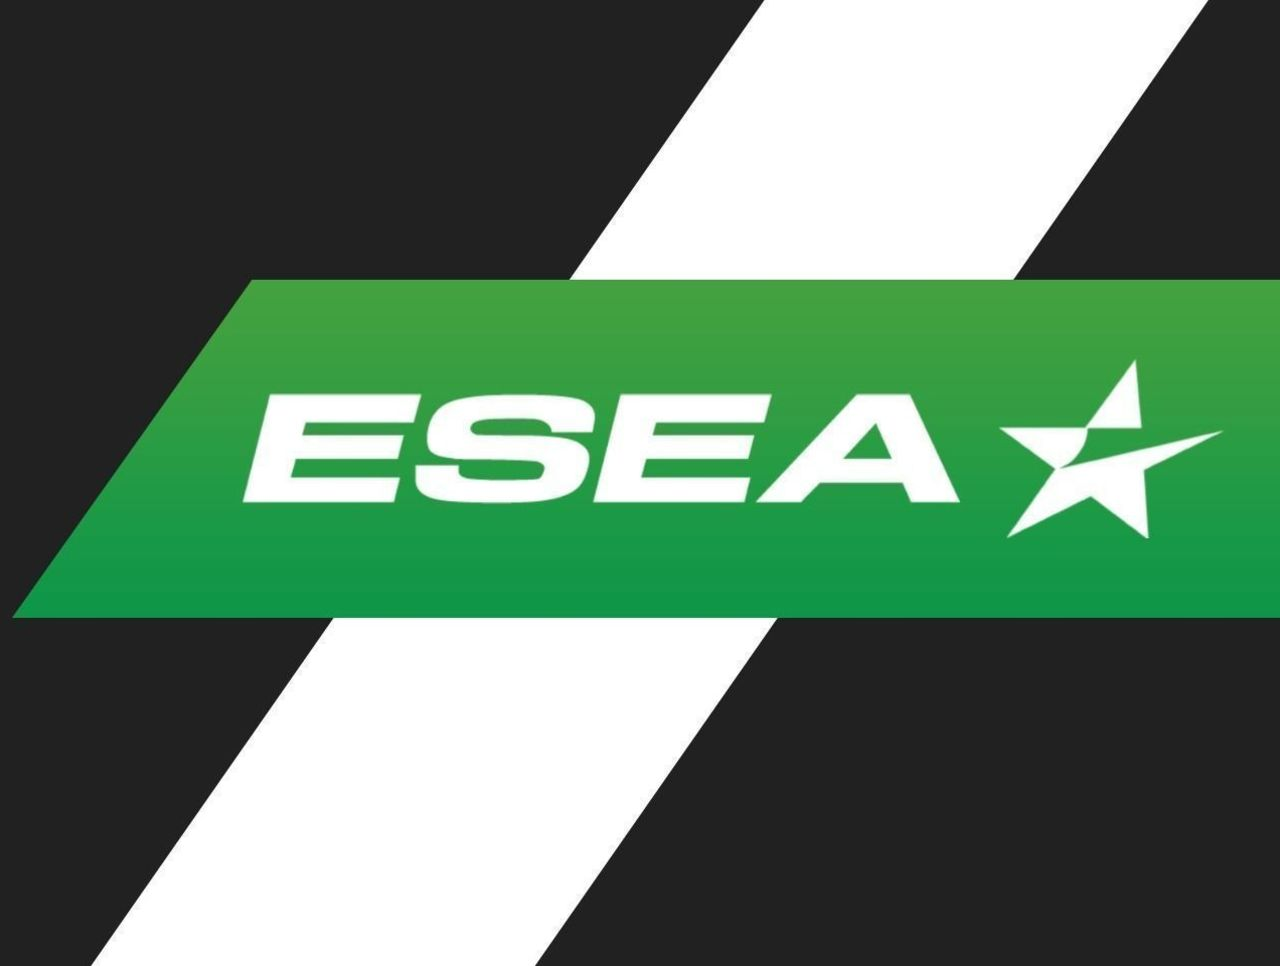 Are ESEA 10-mans the best way to improve?